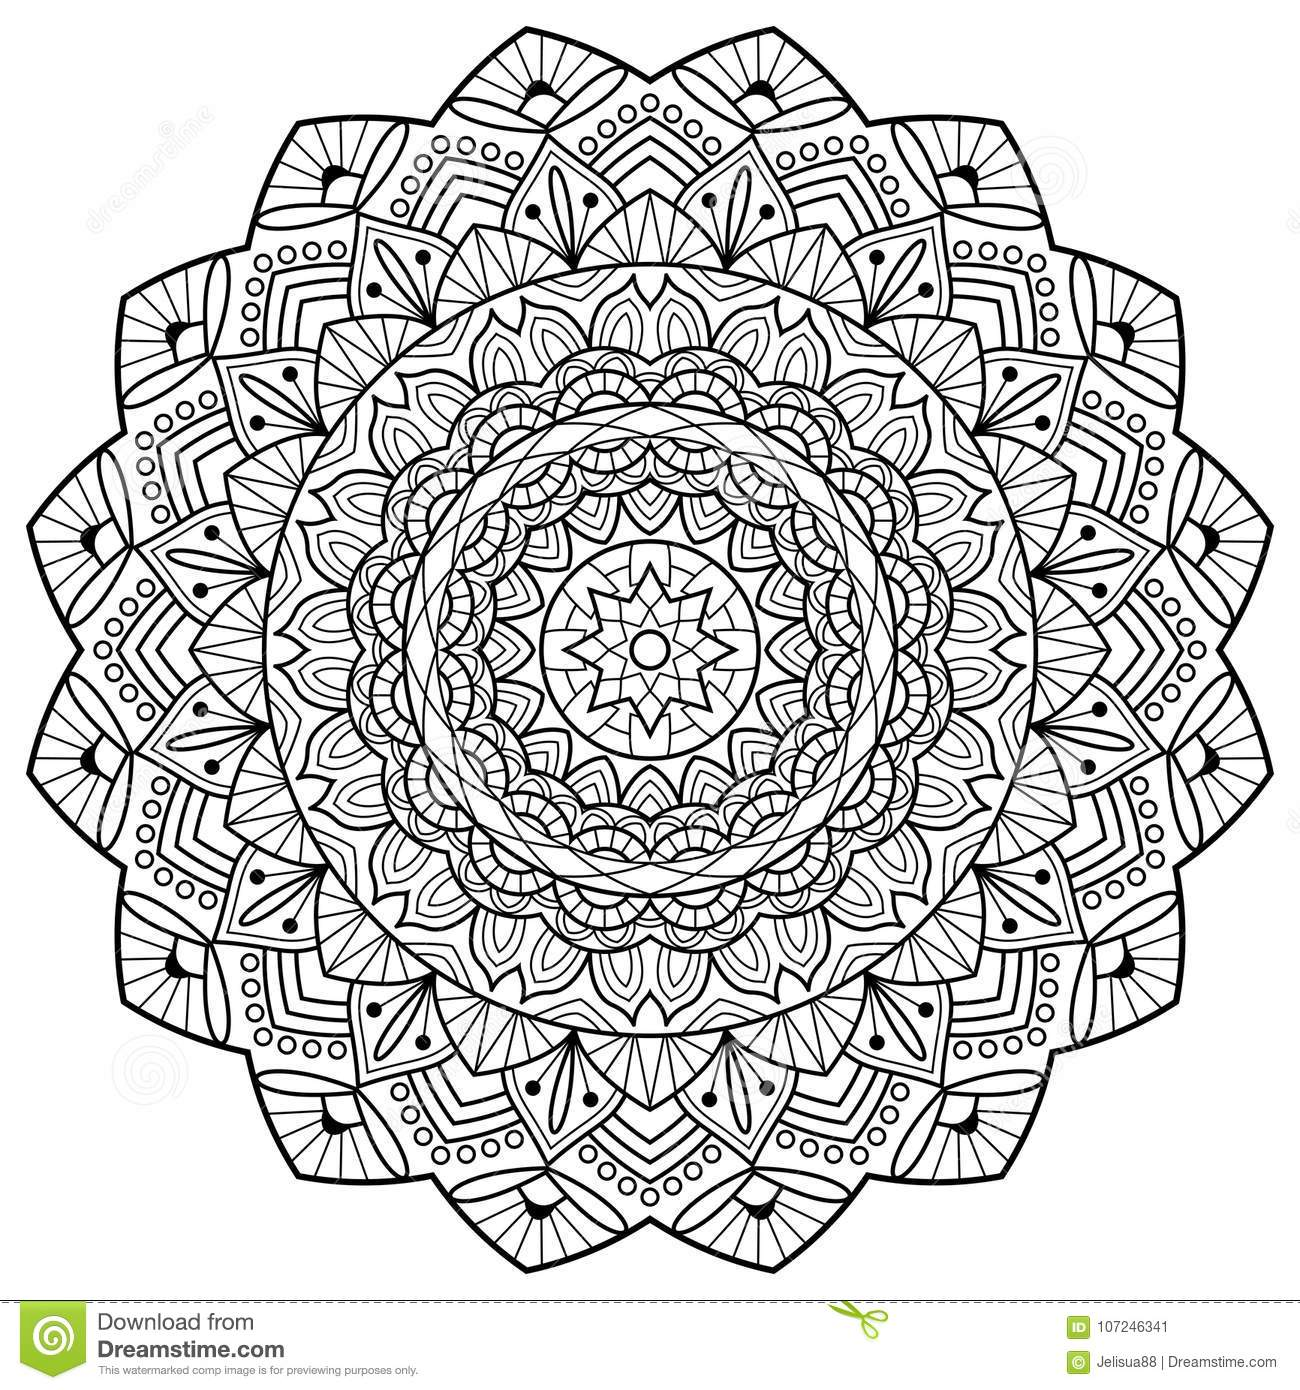 Coloring Book Pages Mandala Indian Antistress Medallion Abstract Islamic Flower Arabic Henna Design Yoga Symbol White Background Black Outline